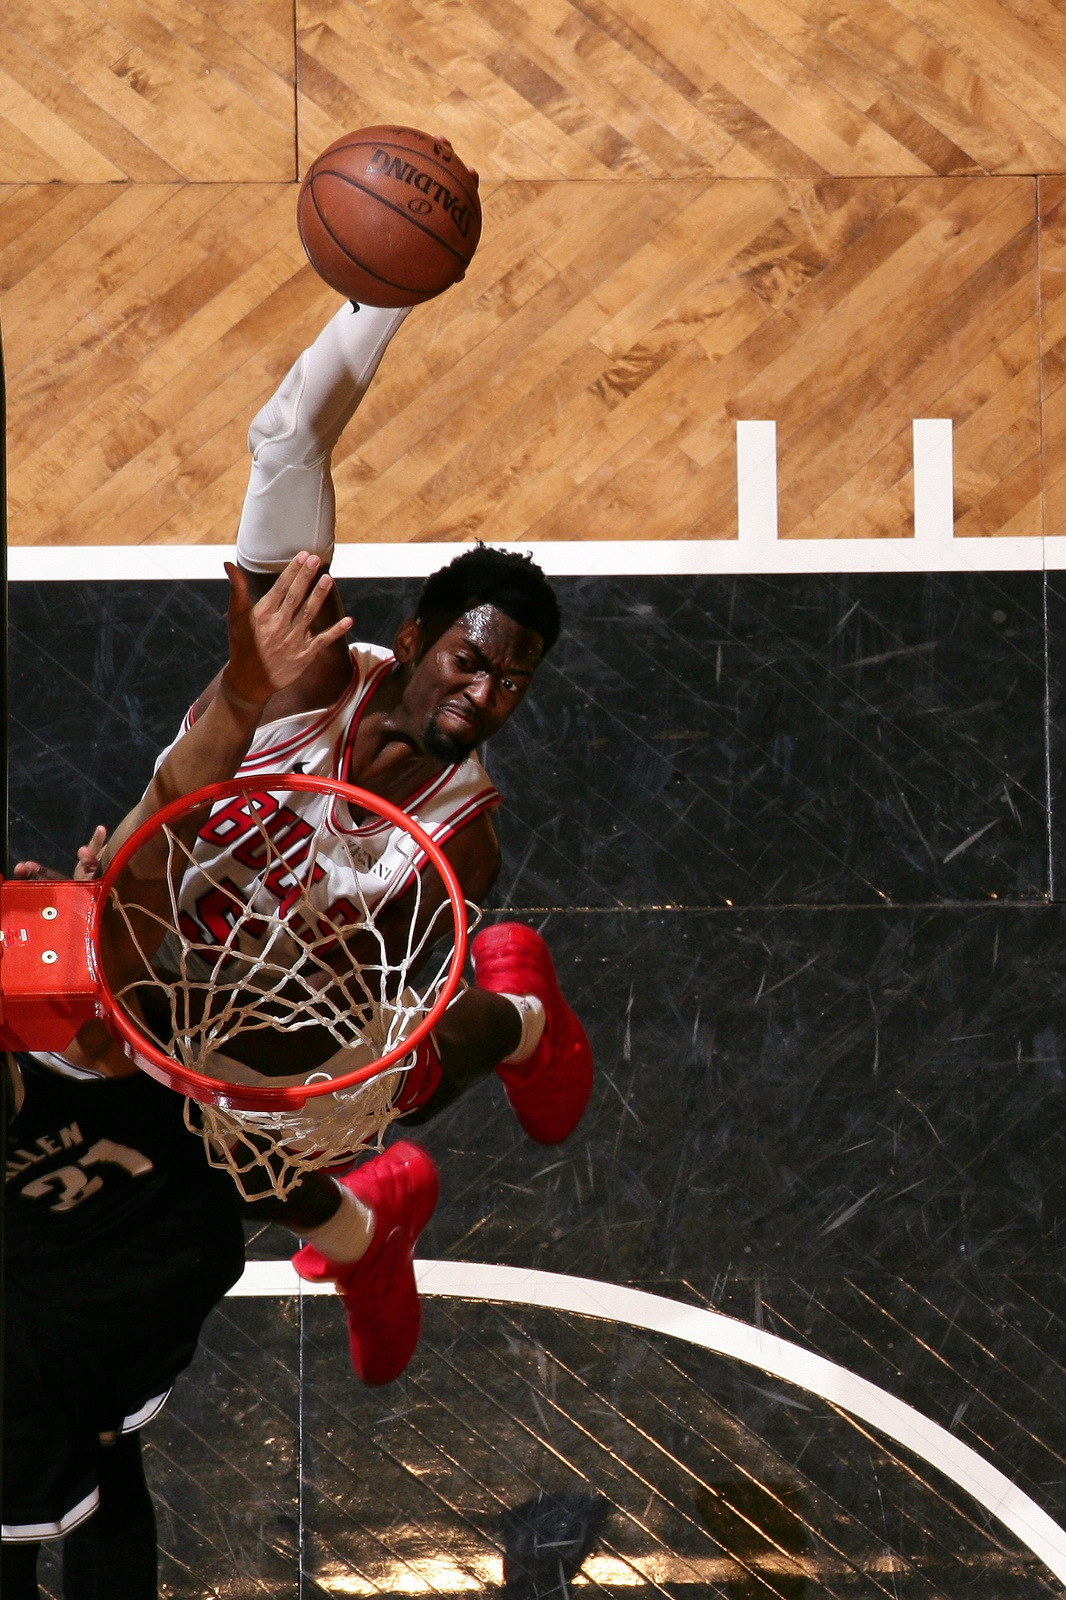 Bobby Portis #5 of the Chicago Bulls dunks the ball against the Brooklyn Nets on January 29, 2019 at Barclays Center in Brooklyn, New York.